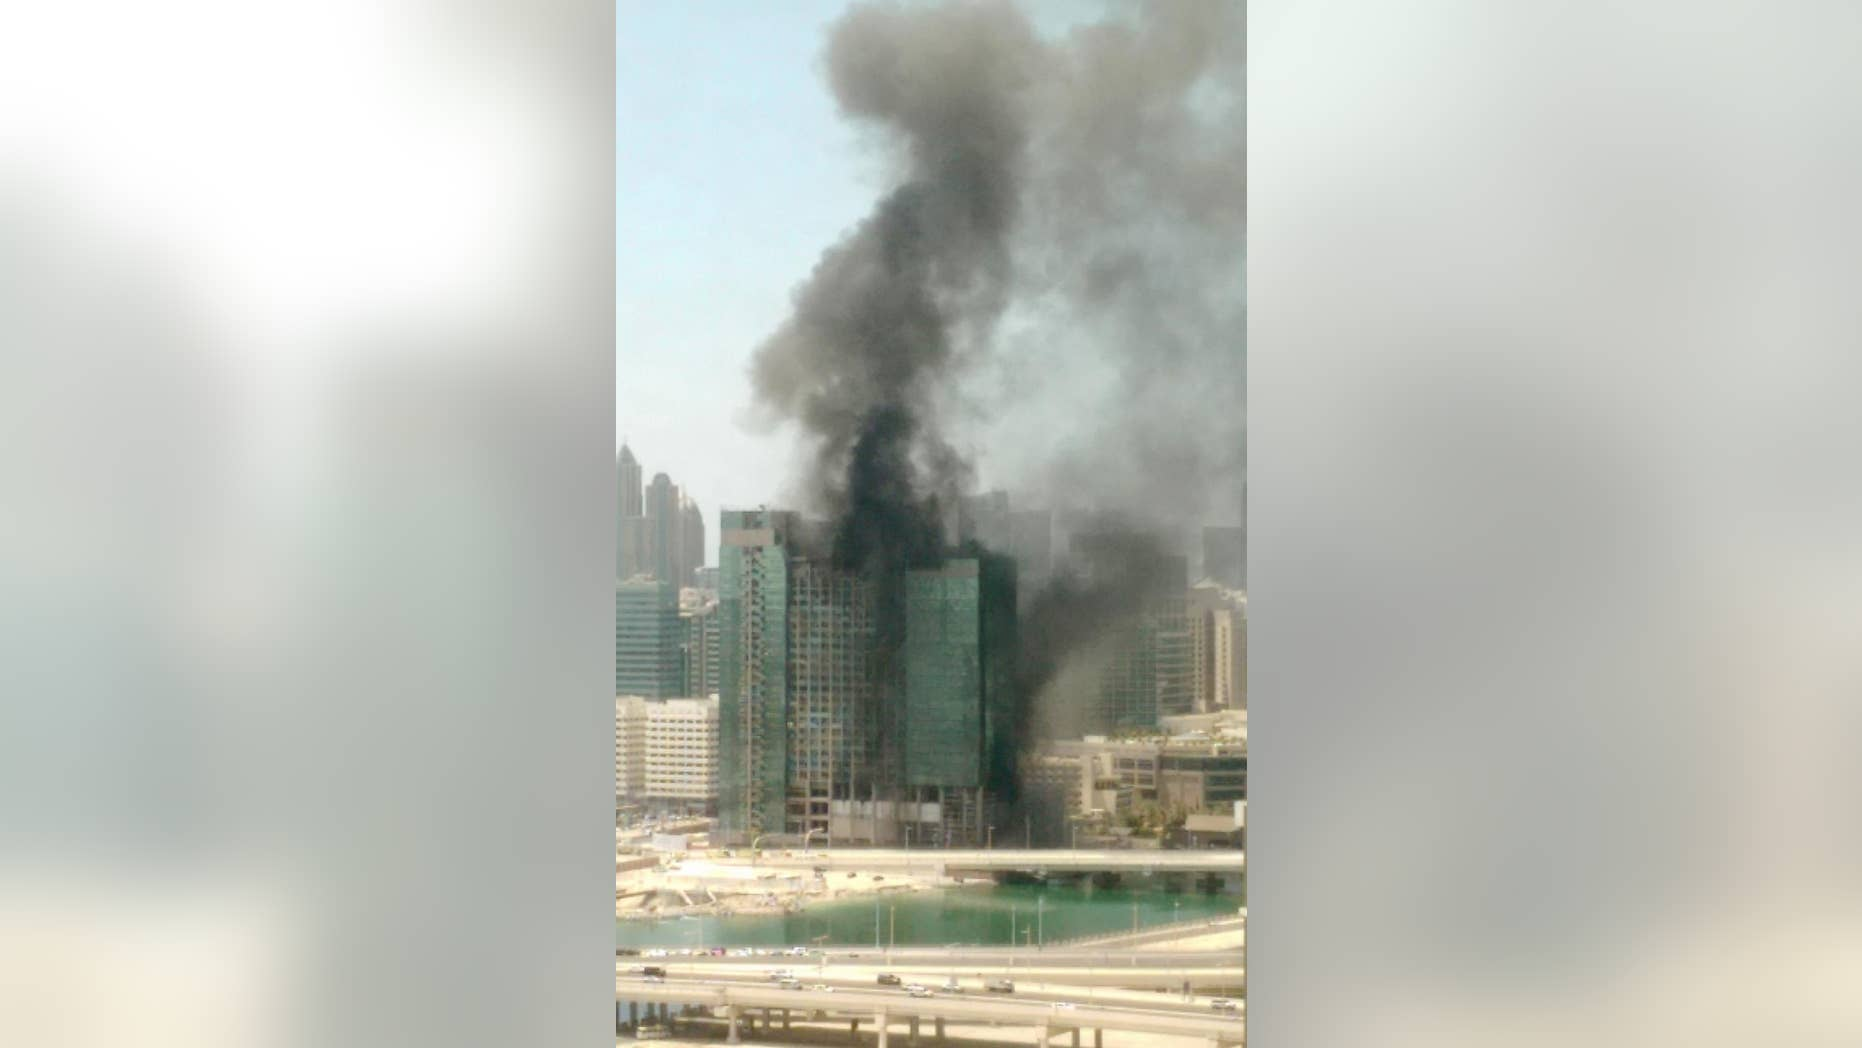 In this photo provided by Hasan Qureshi, smoke rises from a blaze that broke out in a high-rise building under construction in Abu Dhabi, United Arab Emirates, Tuesday, Aug 30, 2016. Cities in the fast-developing Emirates have been hit by a spate of fires in recent years, including one in a residential tower in Dubai last month and another at a luxury hotel next to the city's biggest shopping mall on New Year's Eve. (Hasan Qureshi via AP)